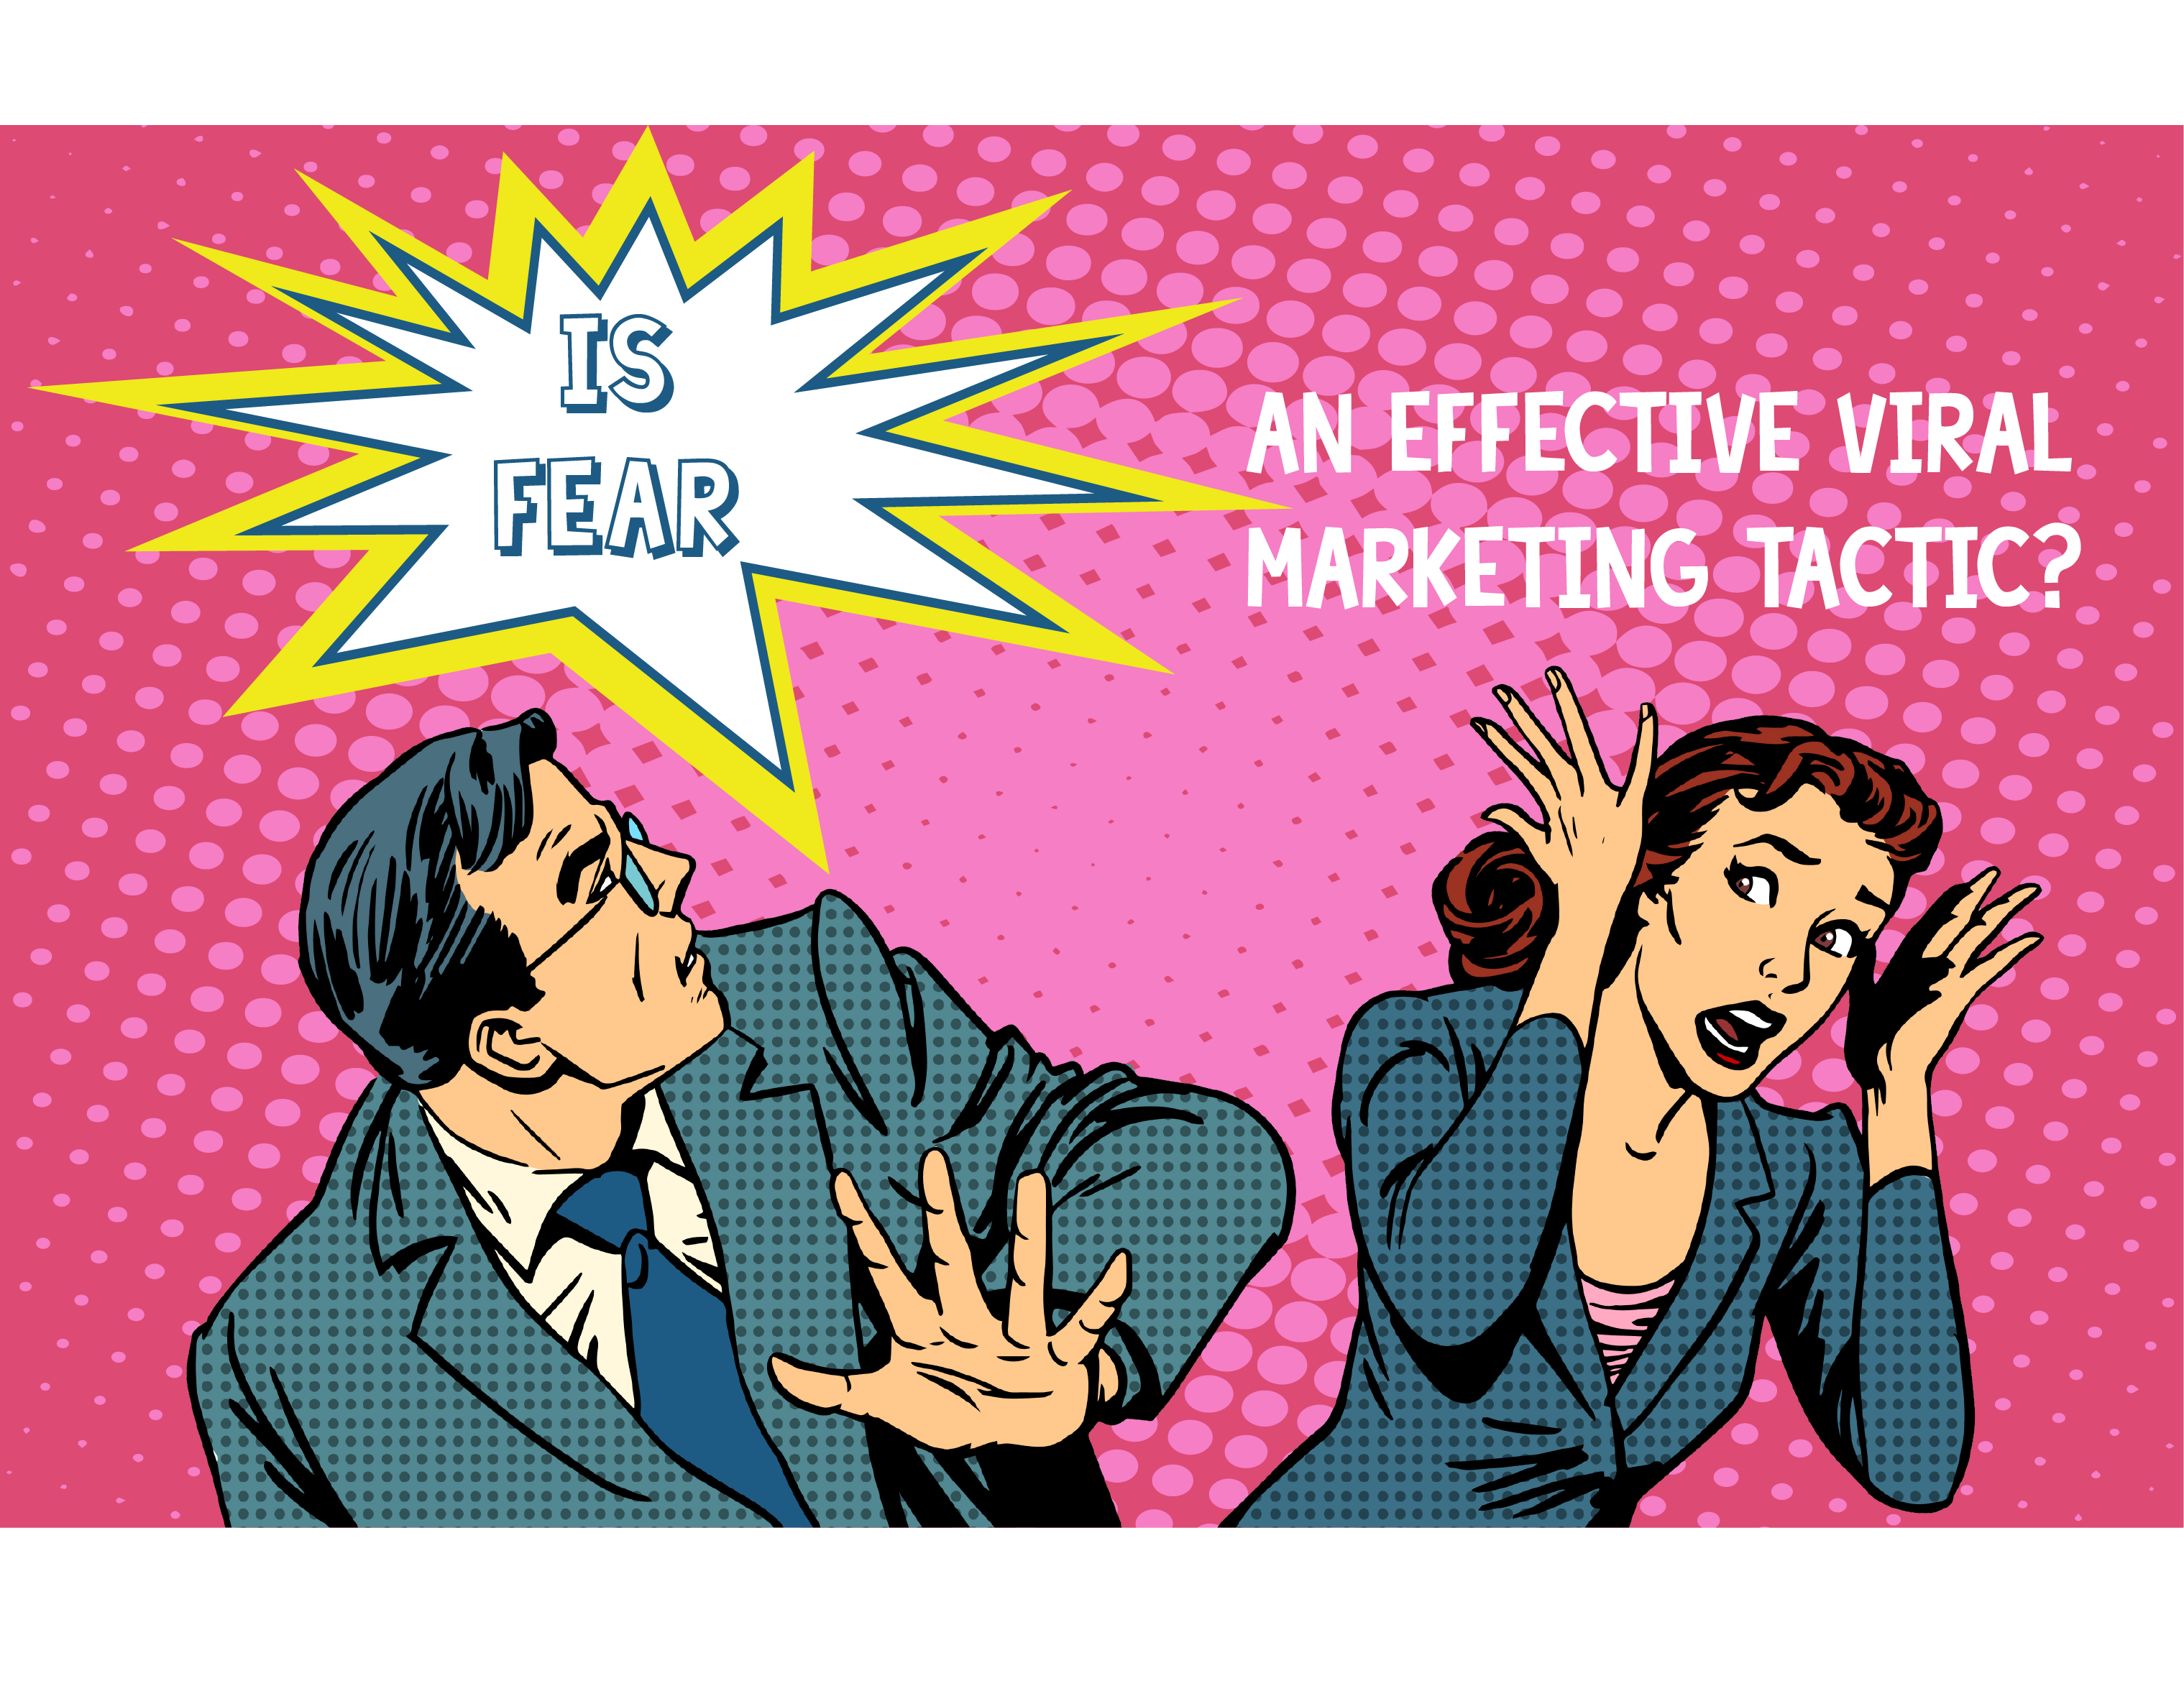 Is Fear an Effective Viral Marketing Tactic